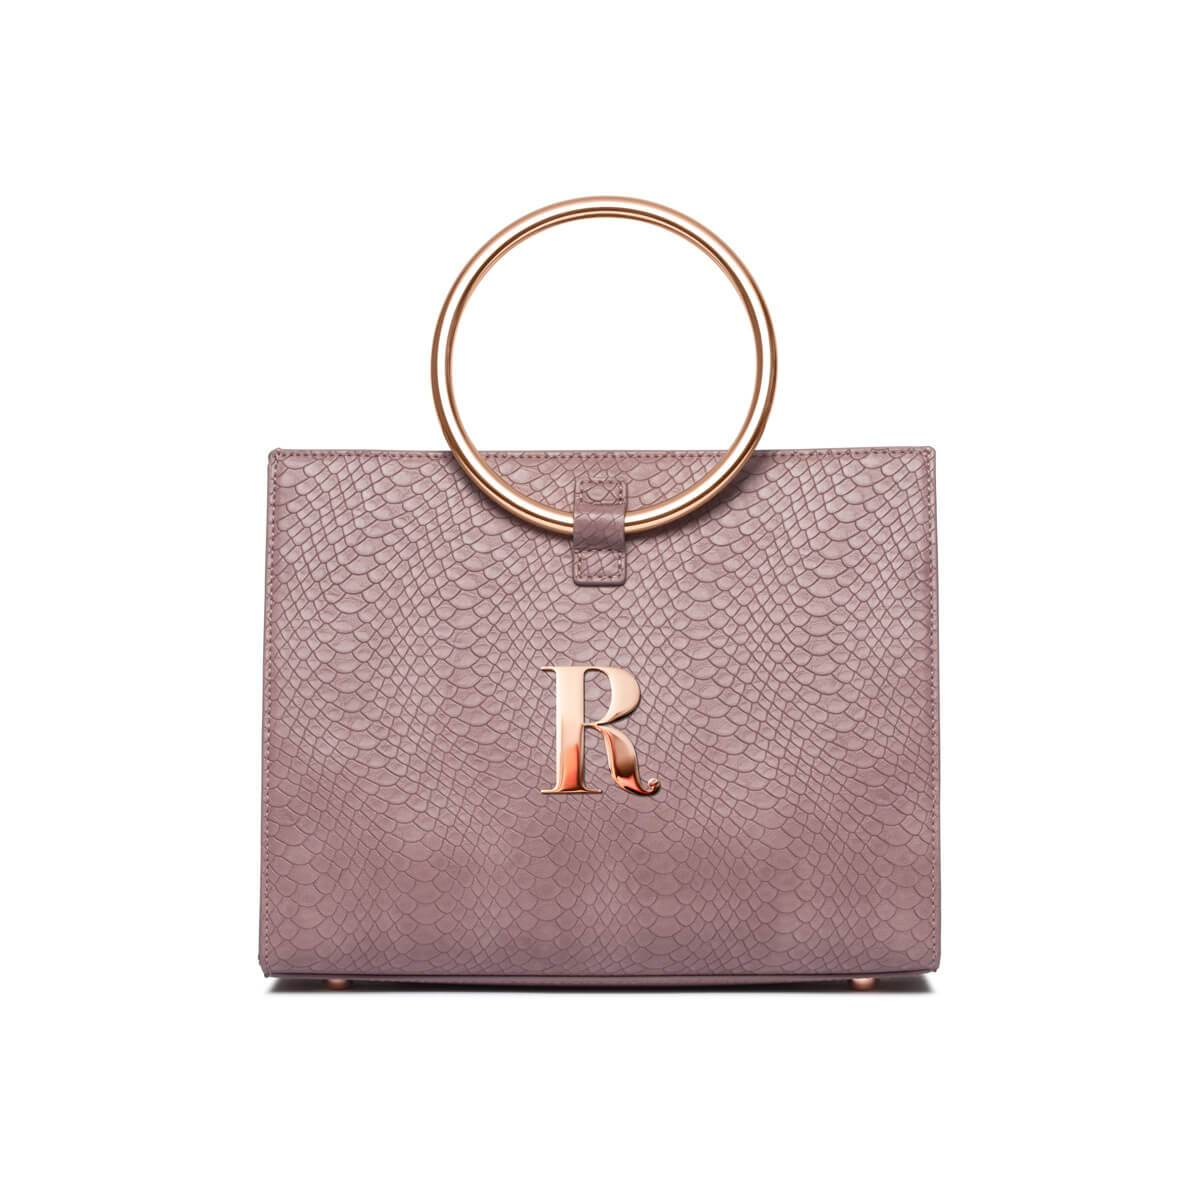 Mauve Moda Handbag Rose Gold